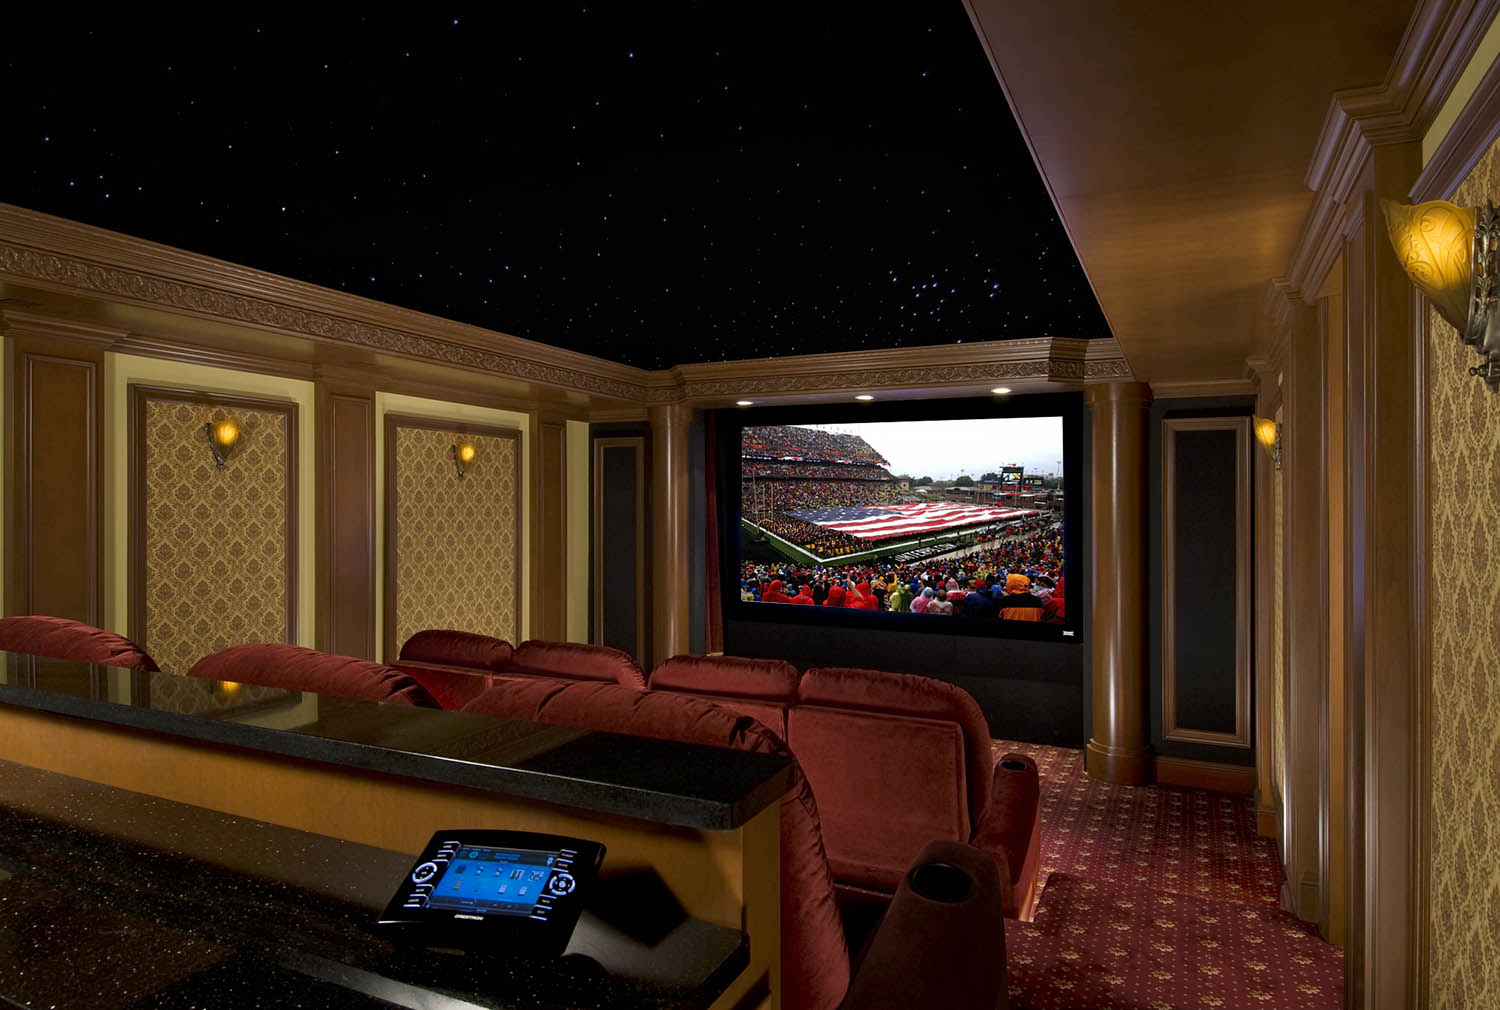 Home Theater Installation, Service and set up